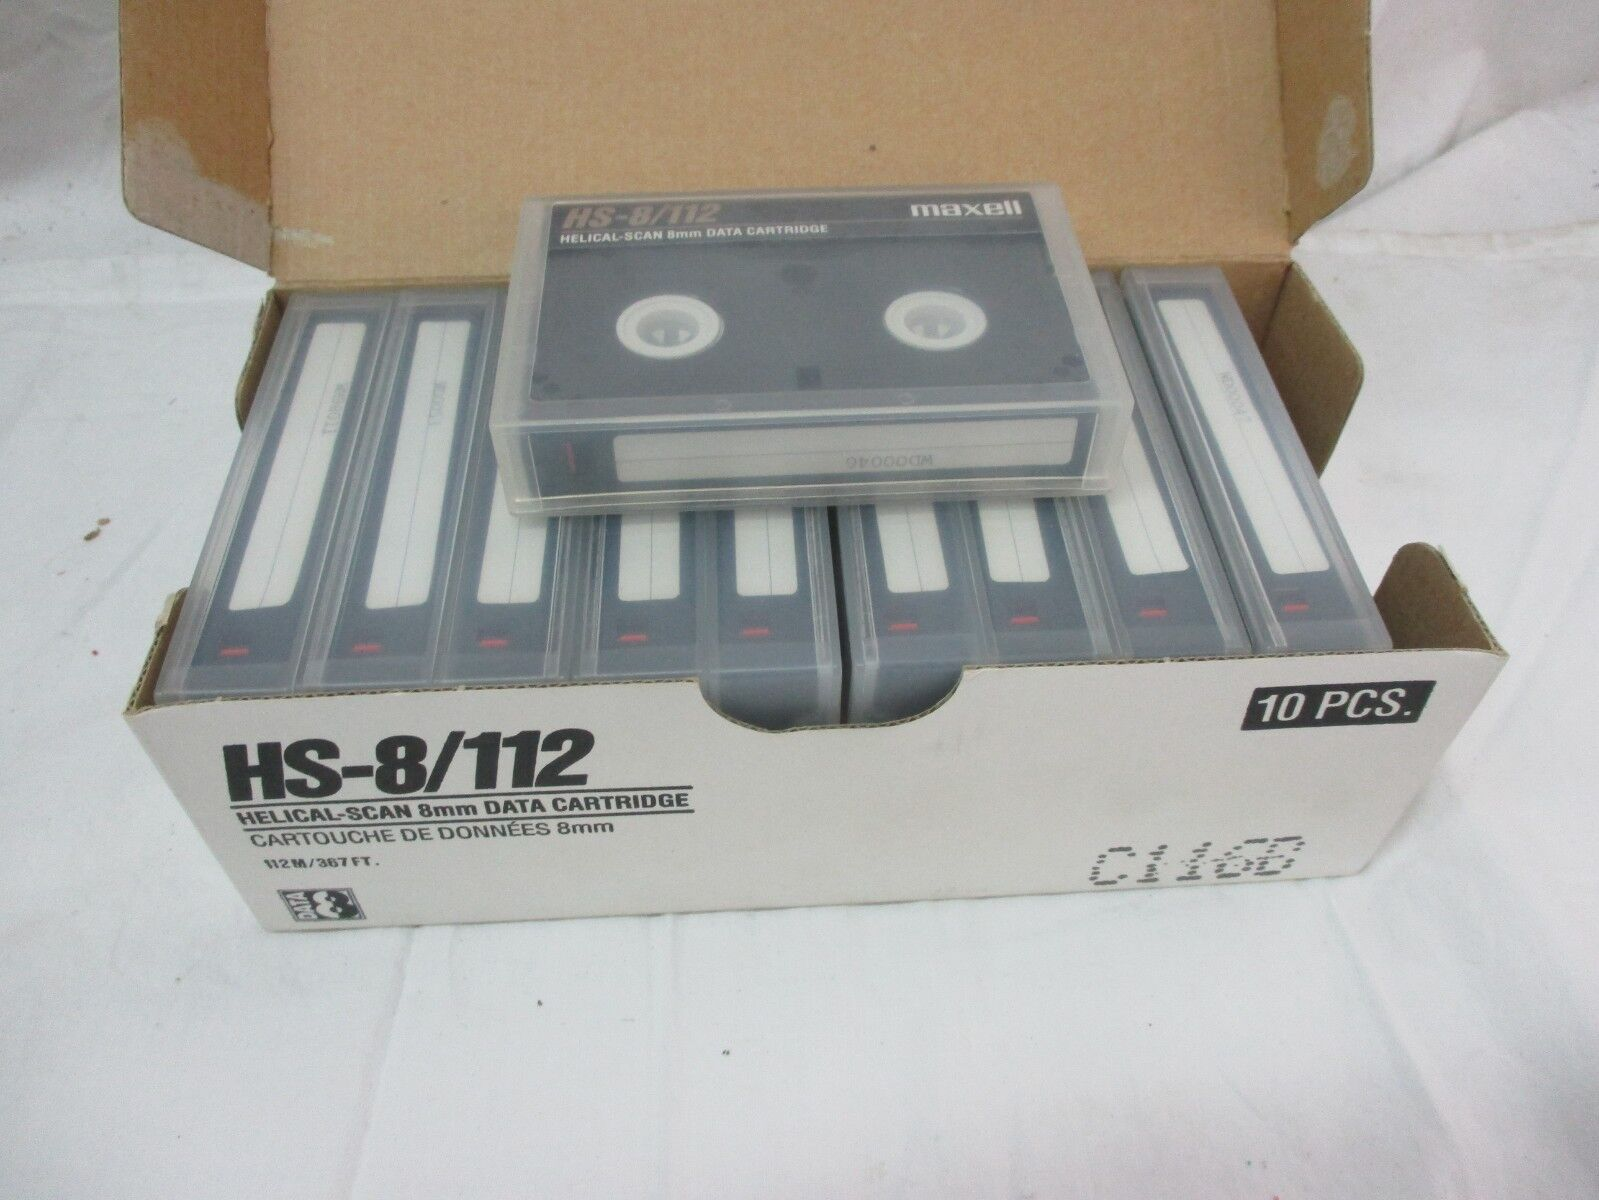 NEW Maxell HS-8/CL 8mm Data Cartridges - Box of 10, Item # 1